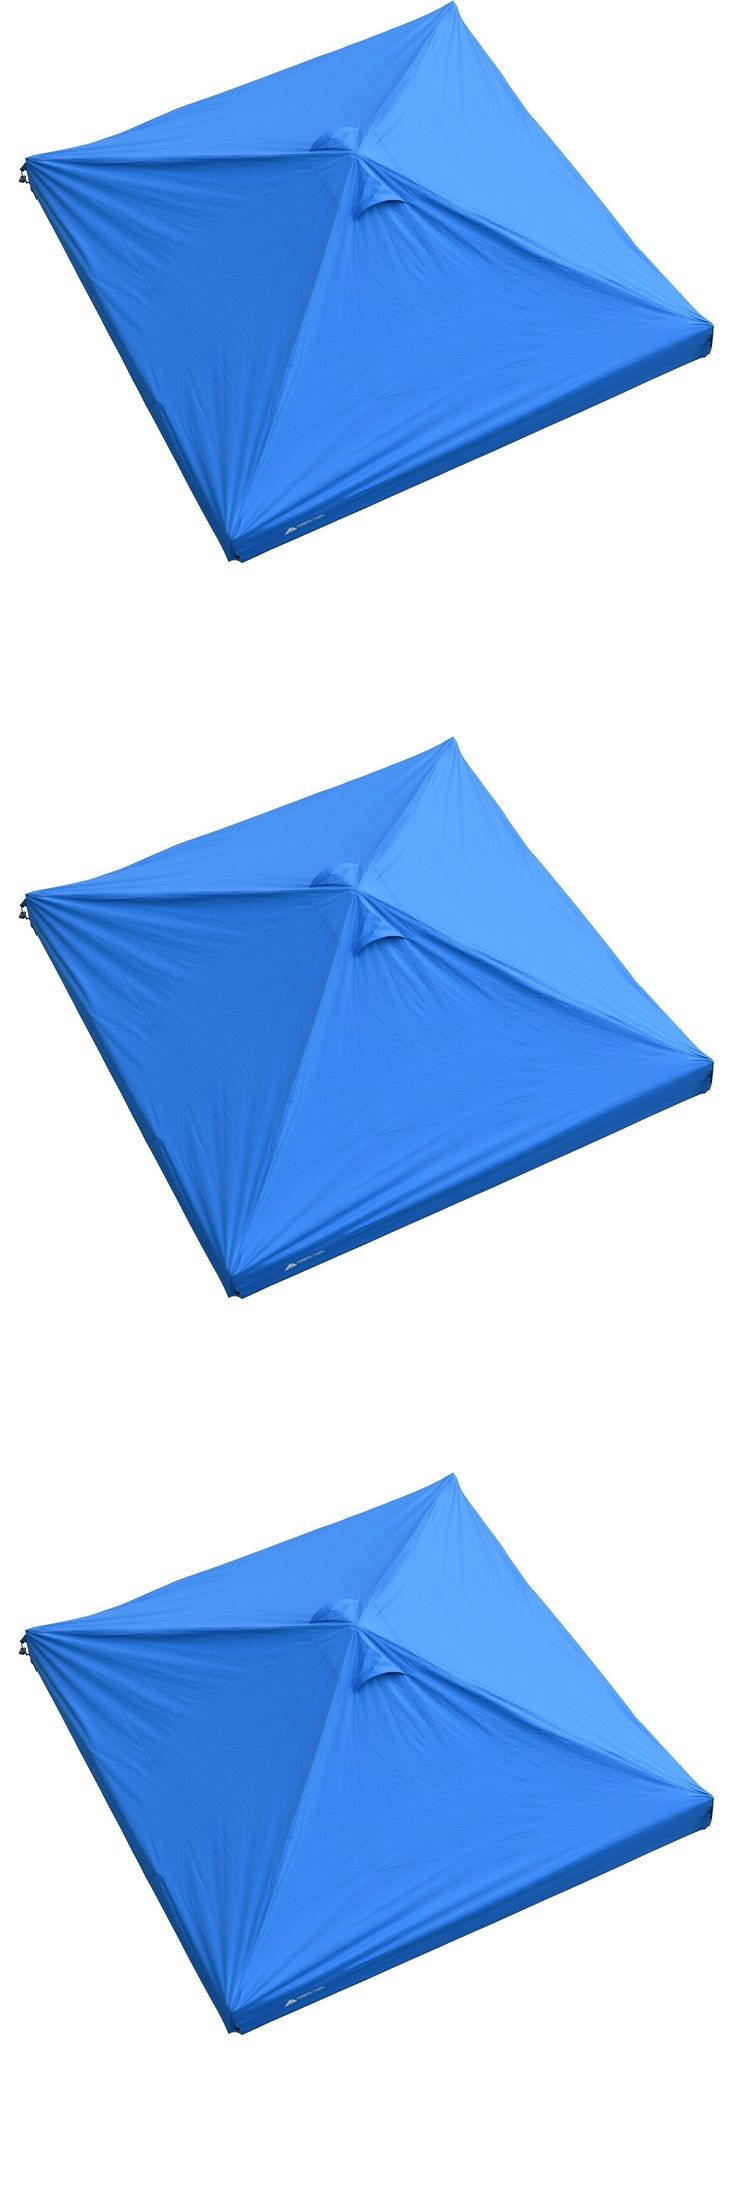 Canopies and Shelters 179011: Ozark Trail 10 X10 Gazebo (Replacement Canopy Only, Frame Not Included) Blue -> BUY IT NOW ONLY: $34 on eBay!